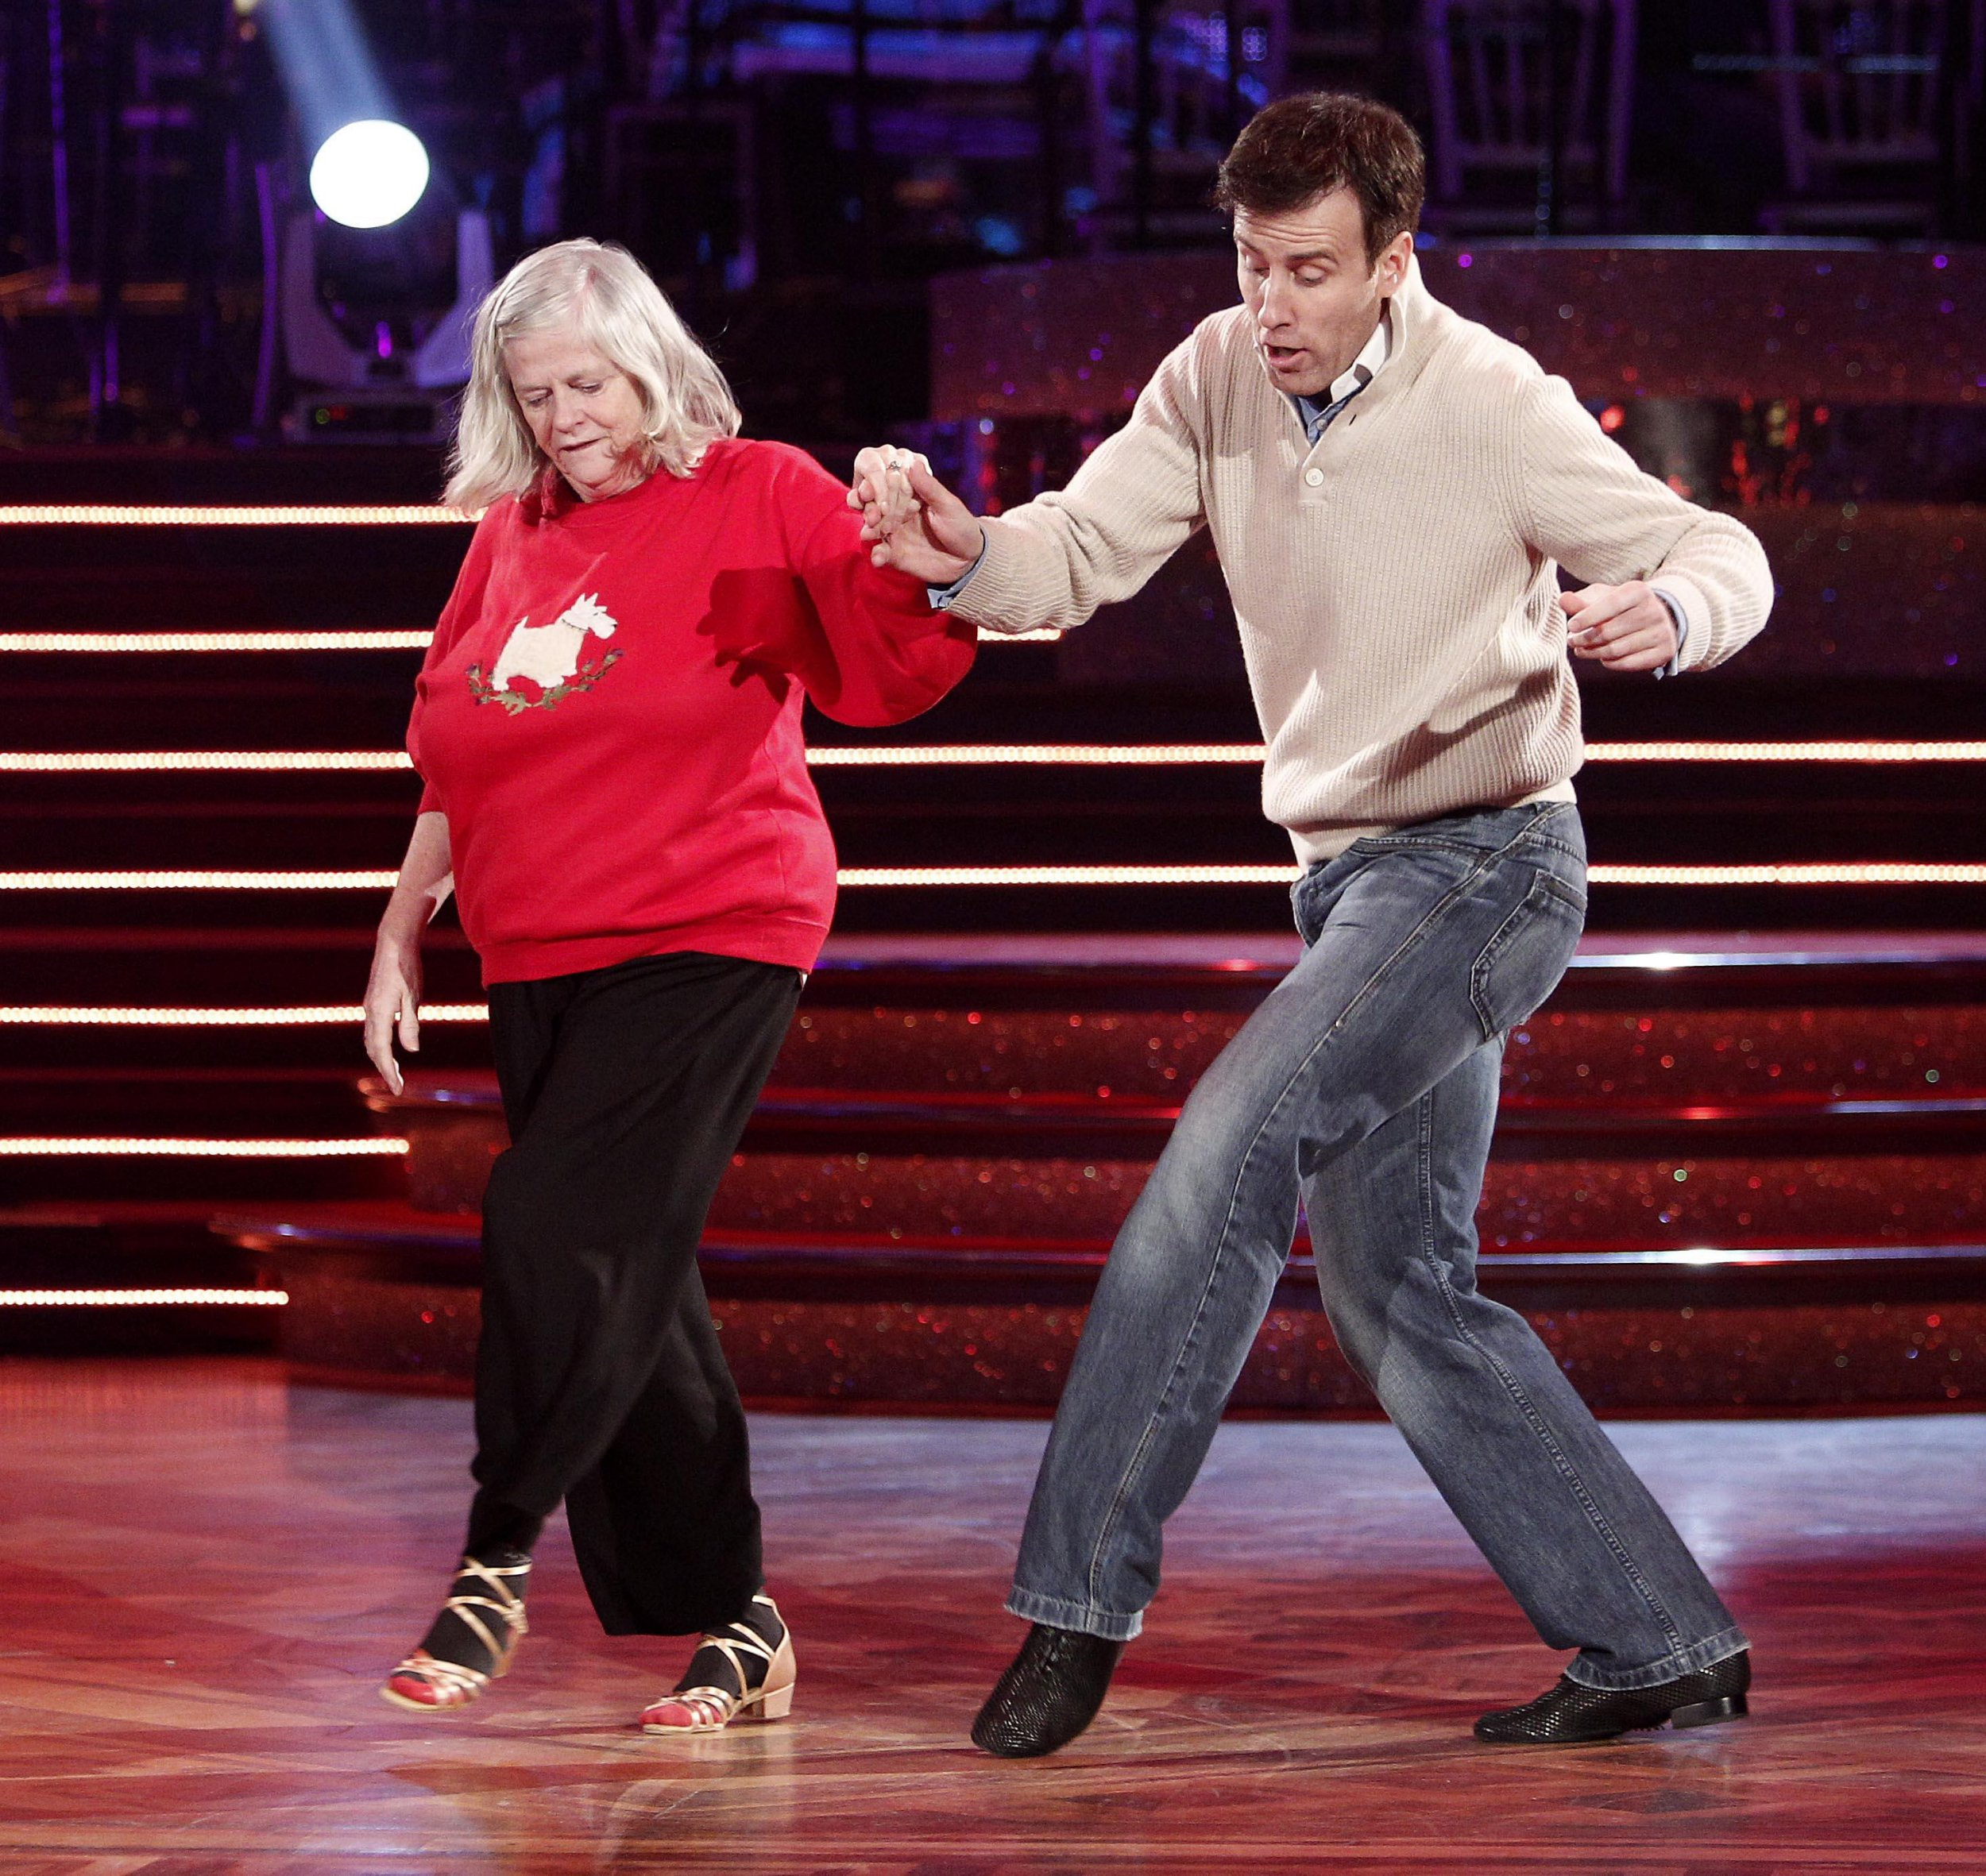 Ann Widdecombe and Anton du Beke go through their routine at Blackpool's Tower Ballroom for ahead of the Strictly Come Dancing show tomorrow.